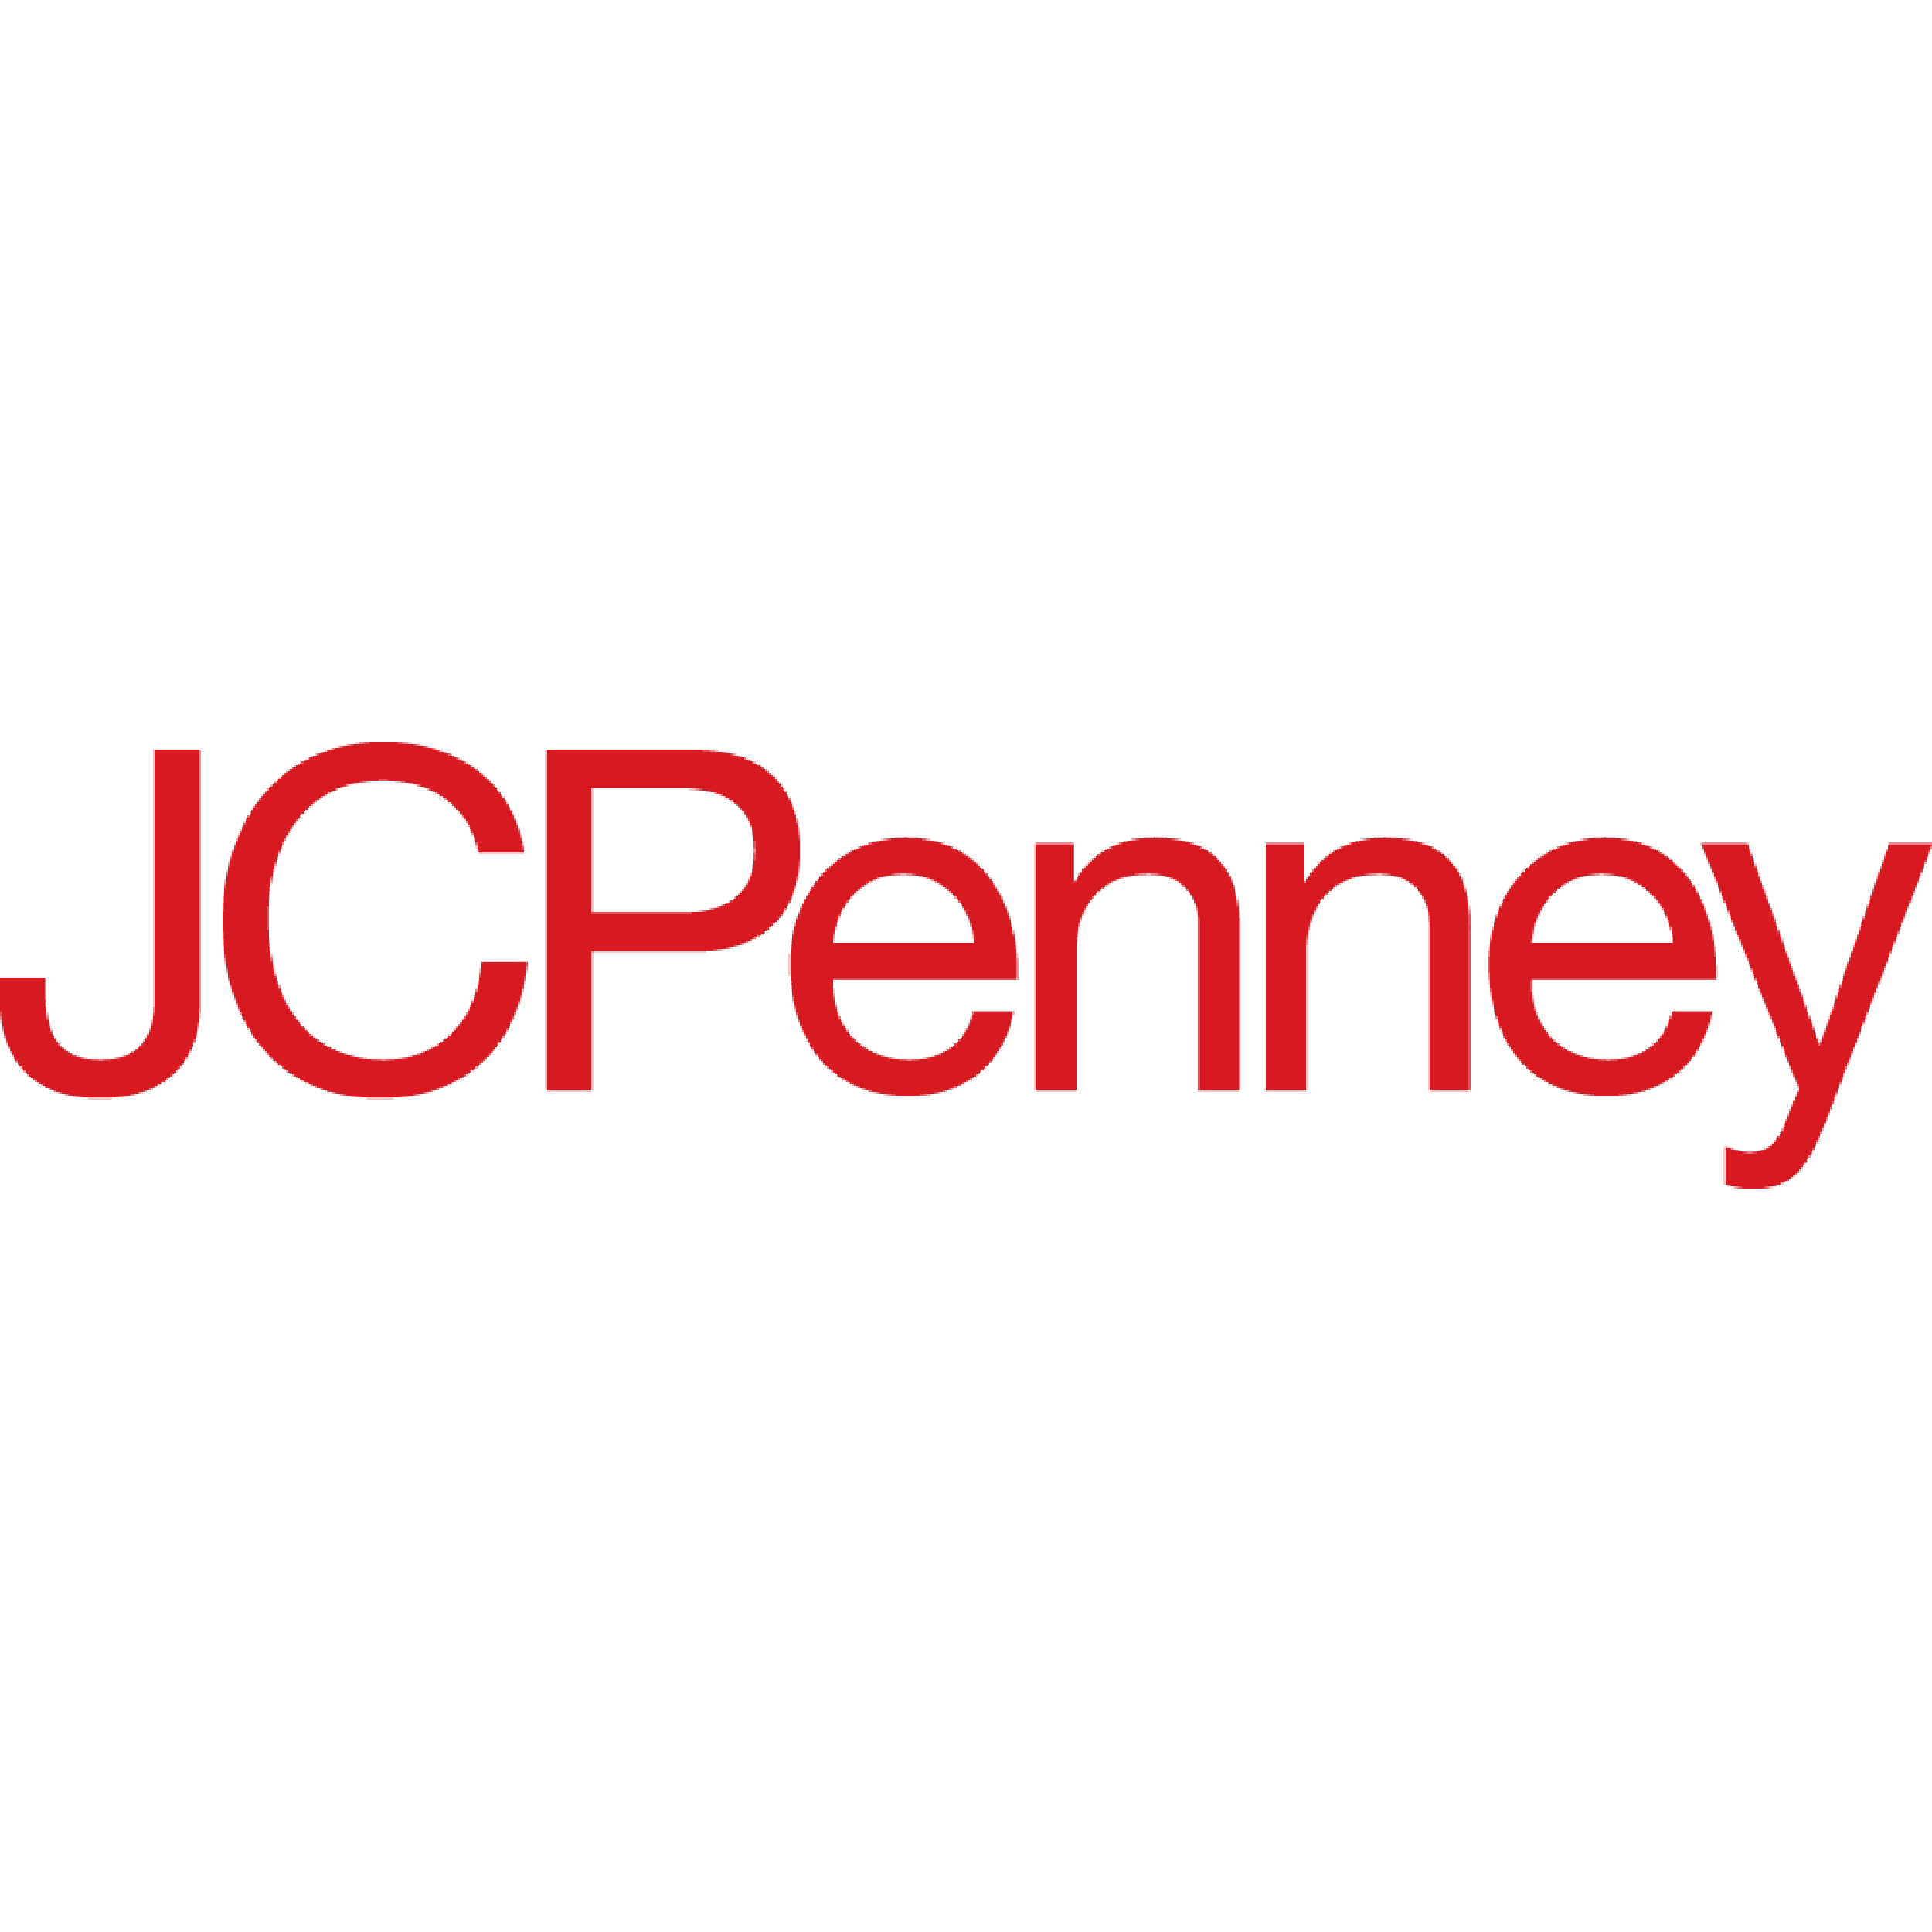 JCPenney - Flagstaff, AZ - Department Stores